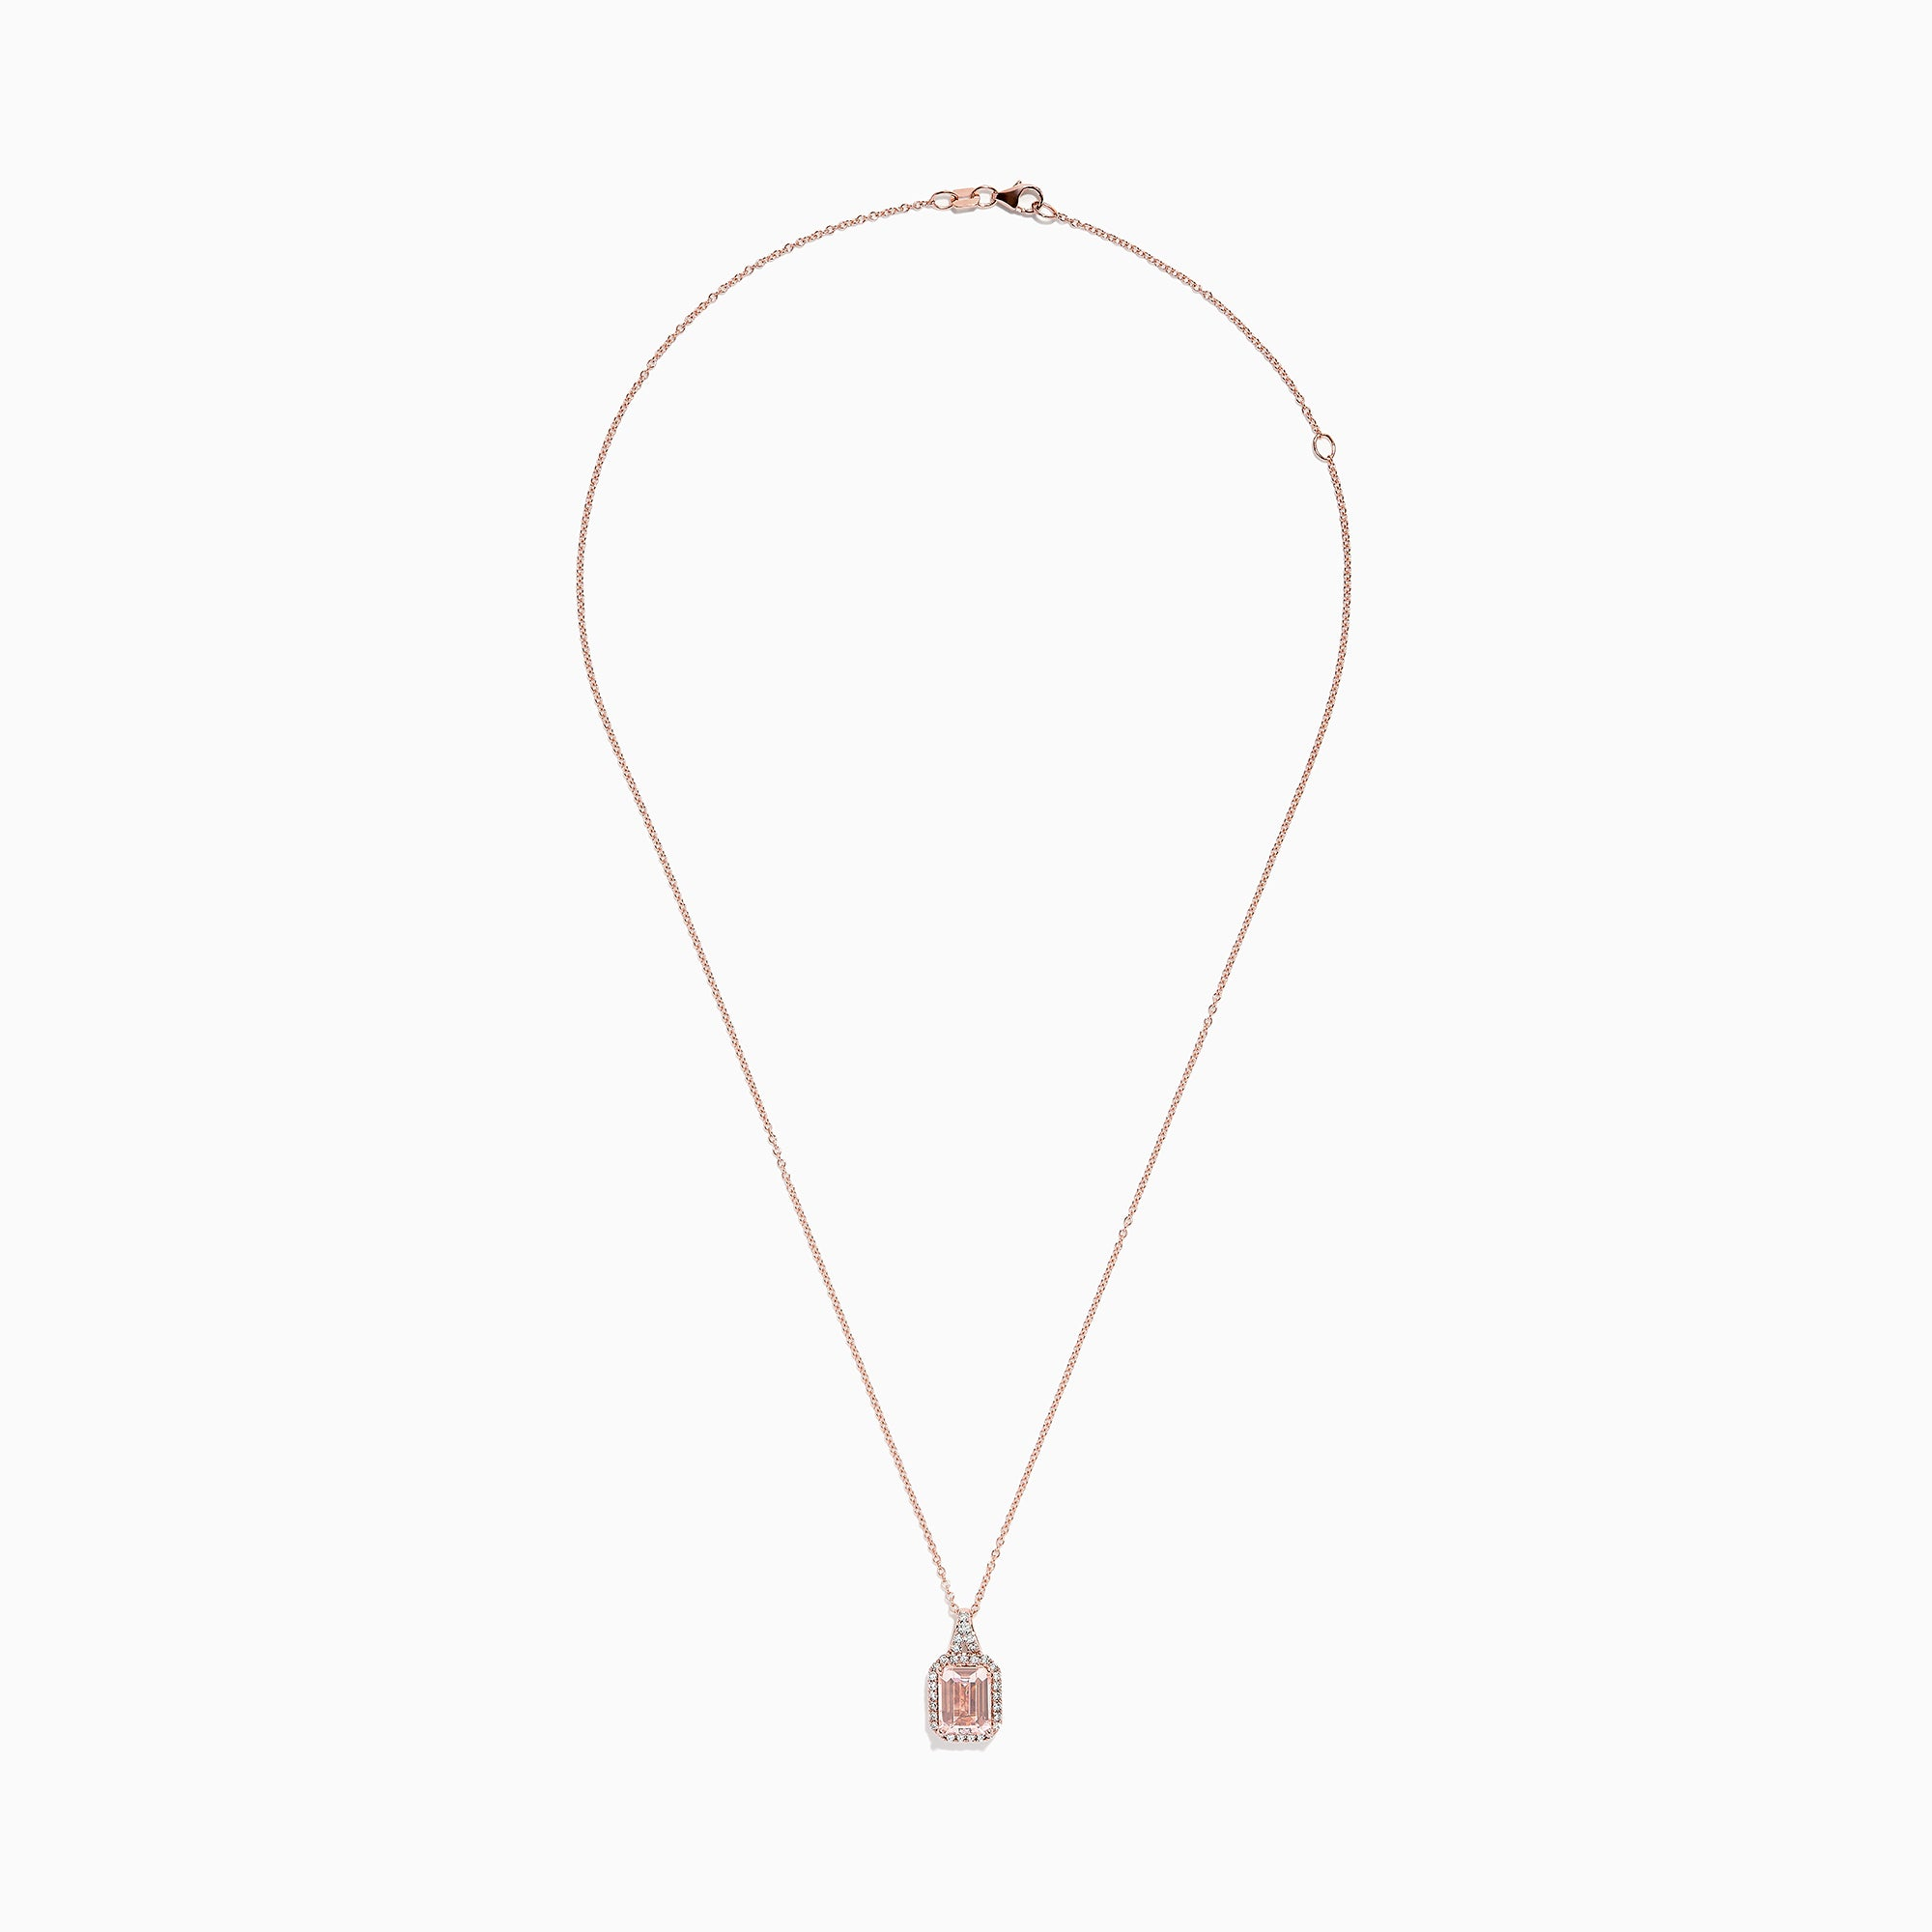 Effy Blush 14K Rose Gold Morganite and Diamond Necklace, 2.46 TCW